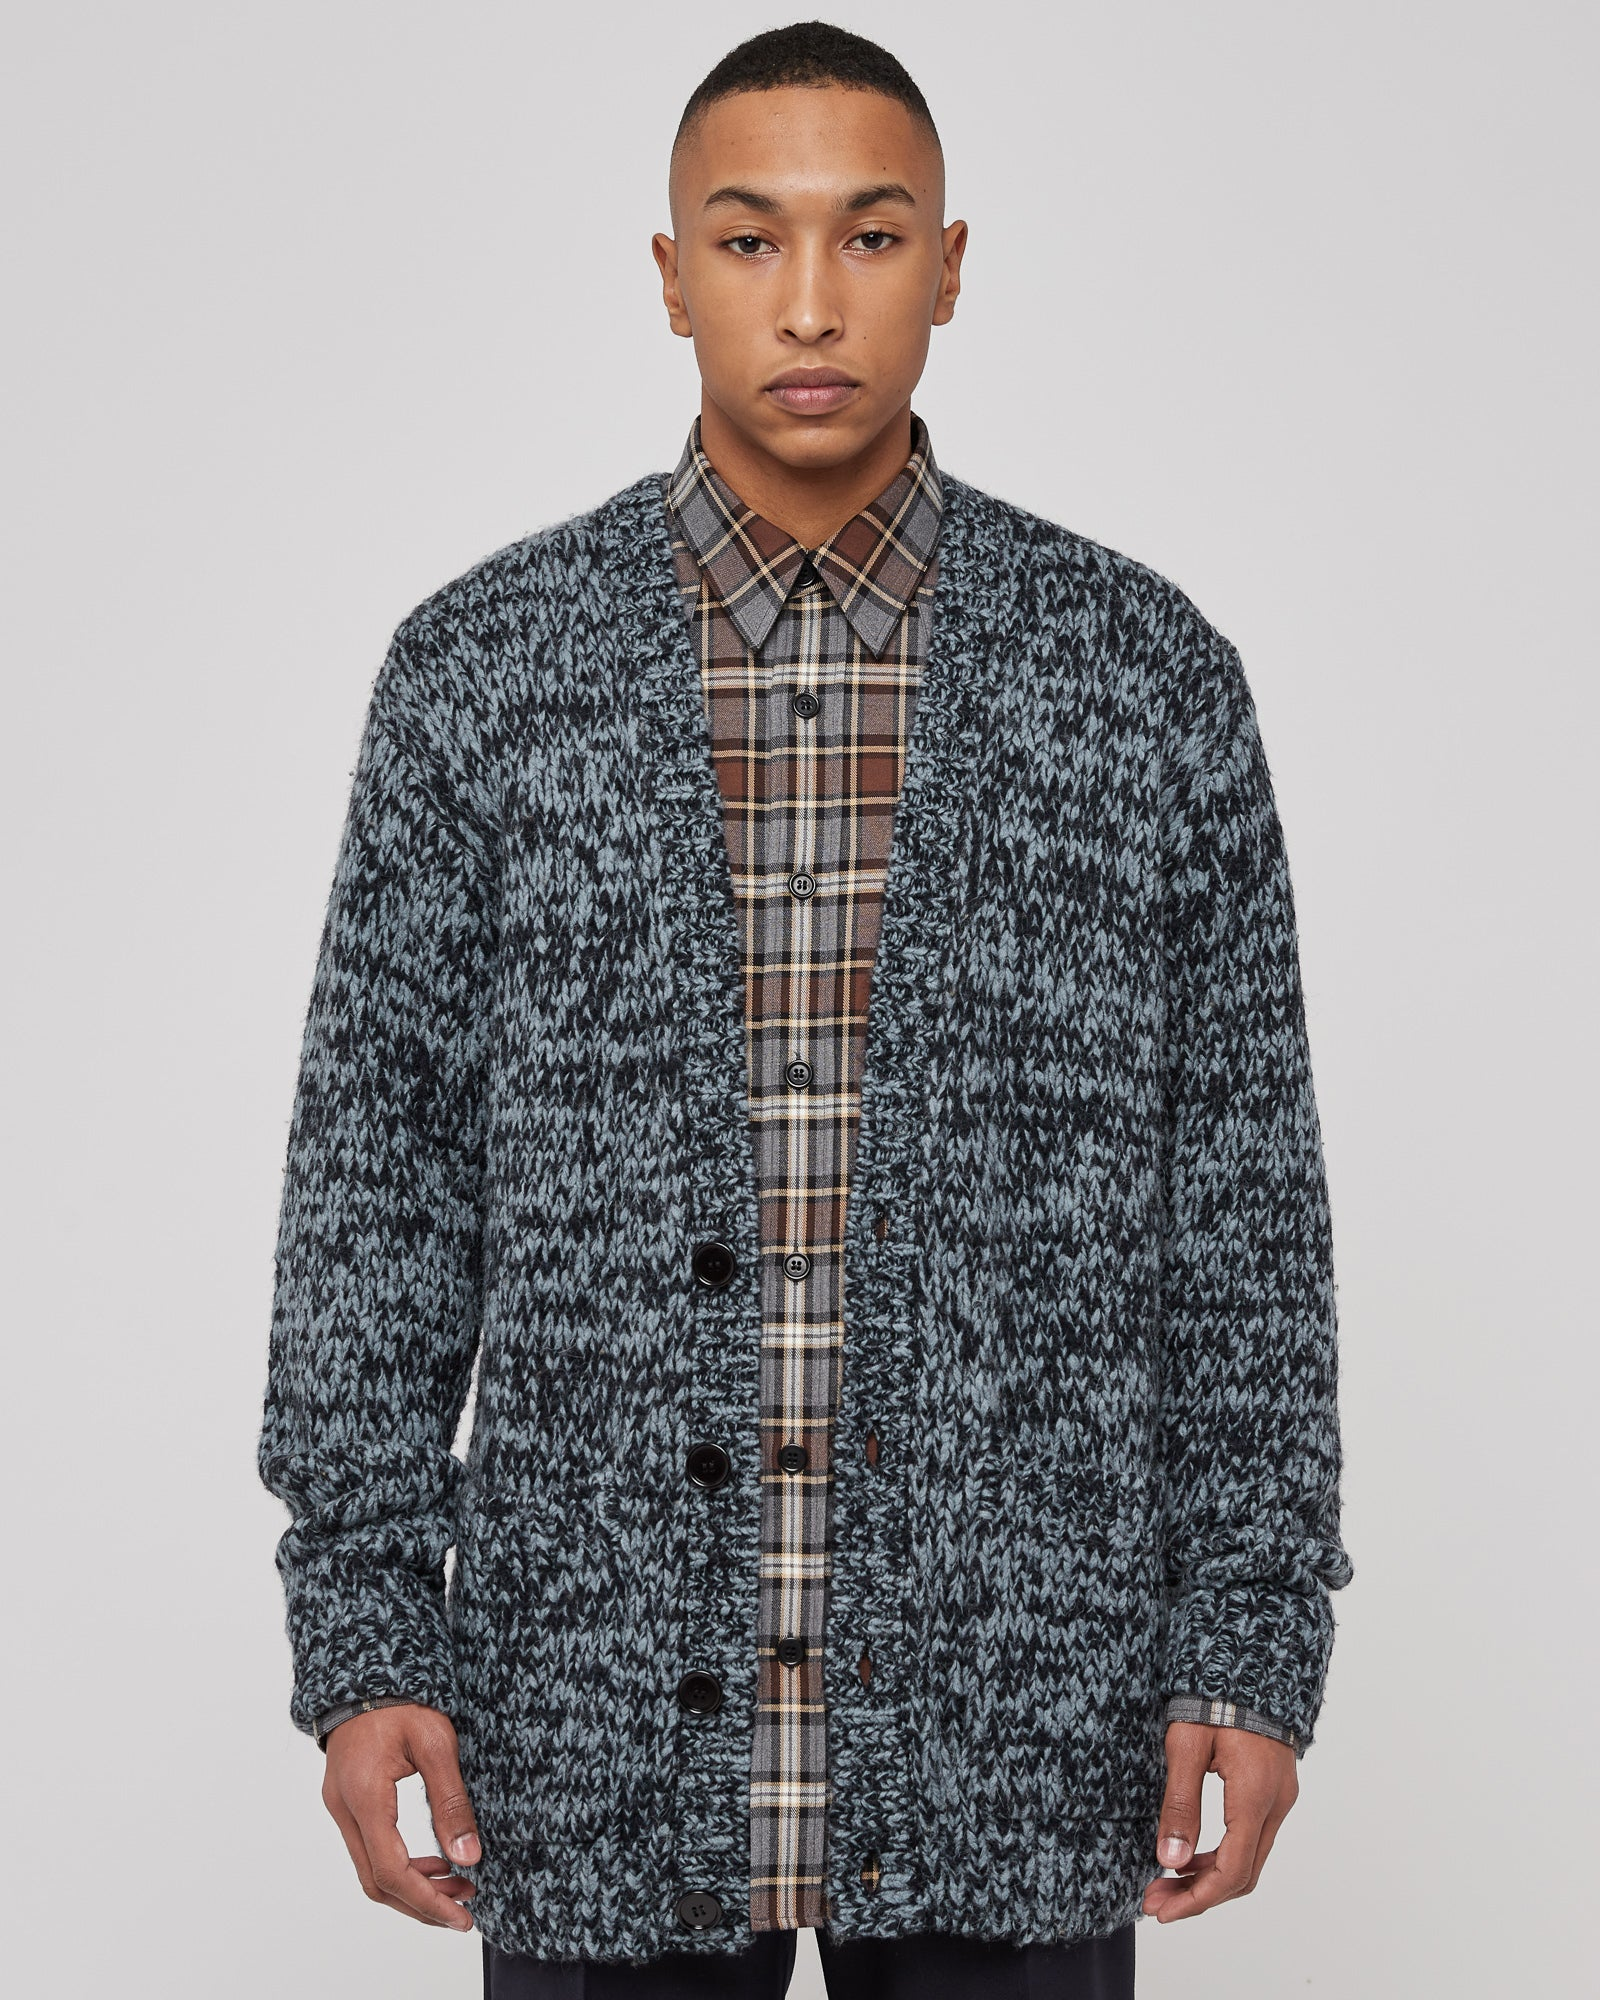 Mick Cardigan in Raf